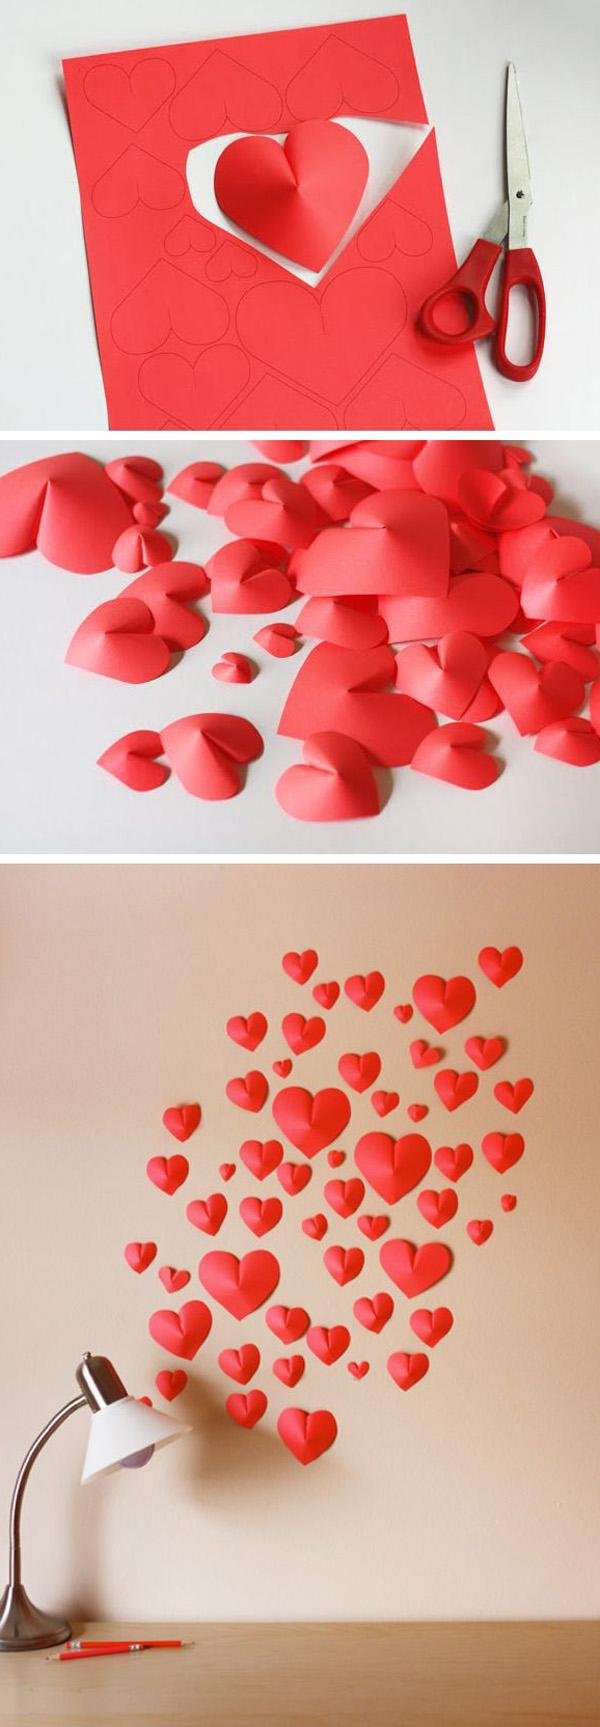 Make a wall of paper hearts. Template for download included